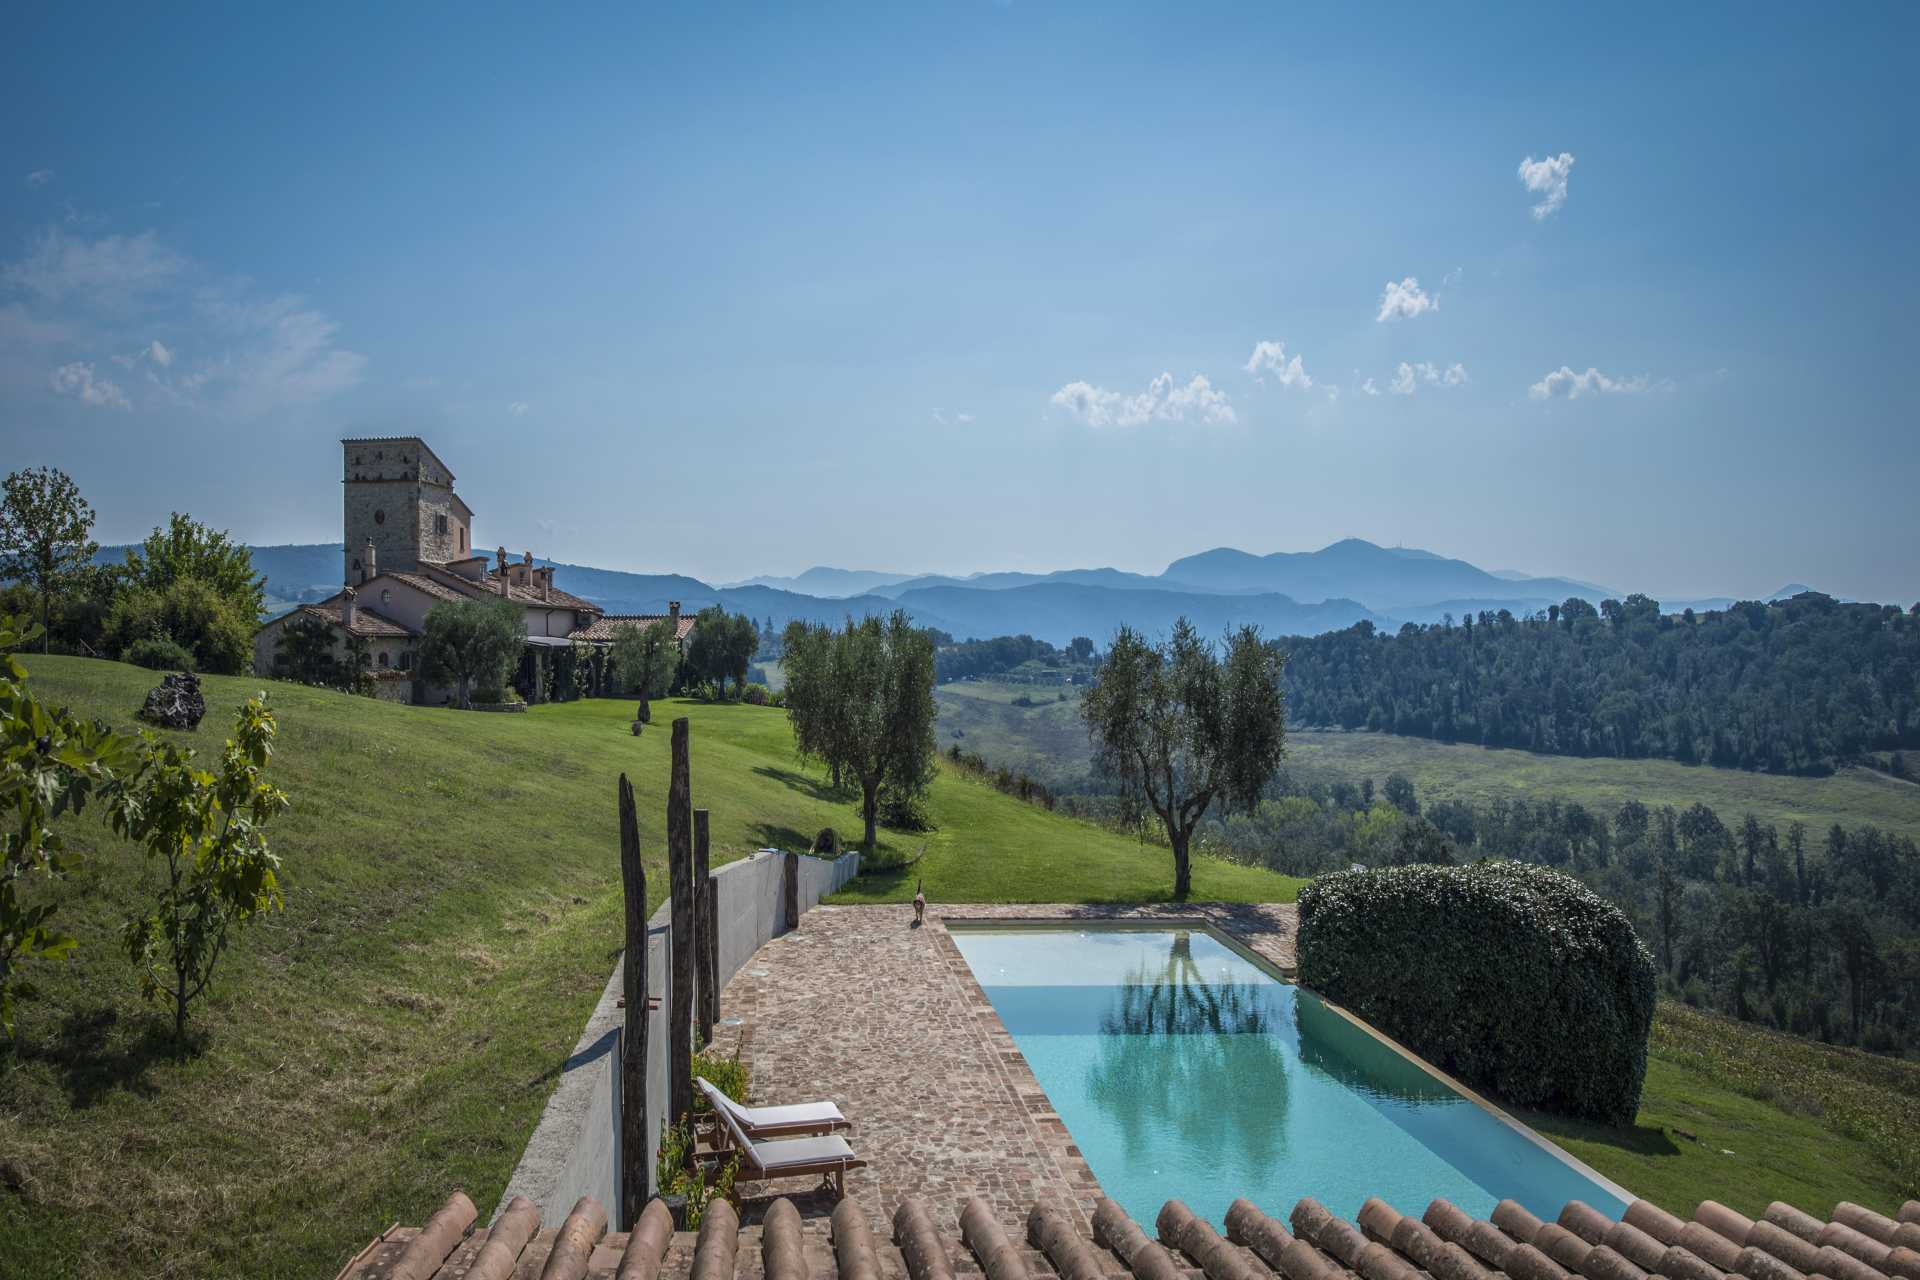 LUXURY VILLA FOR SALE IN AMELIA, UMBRIA